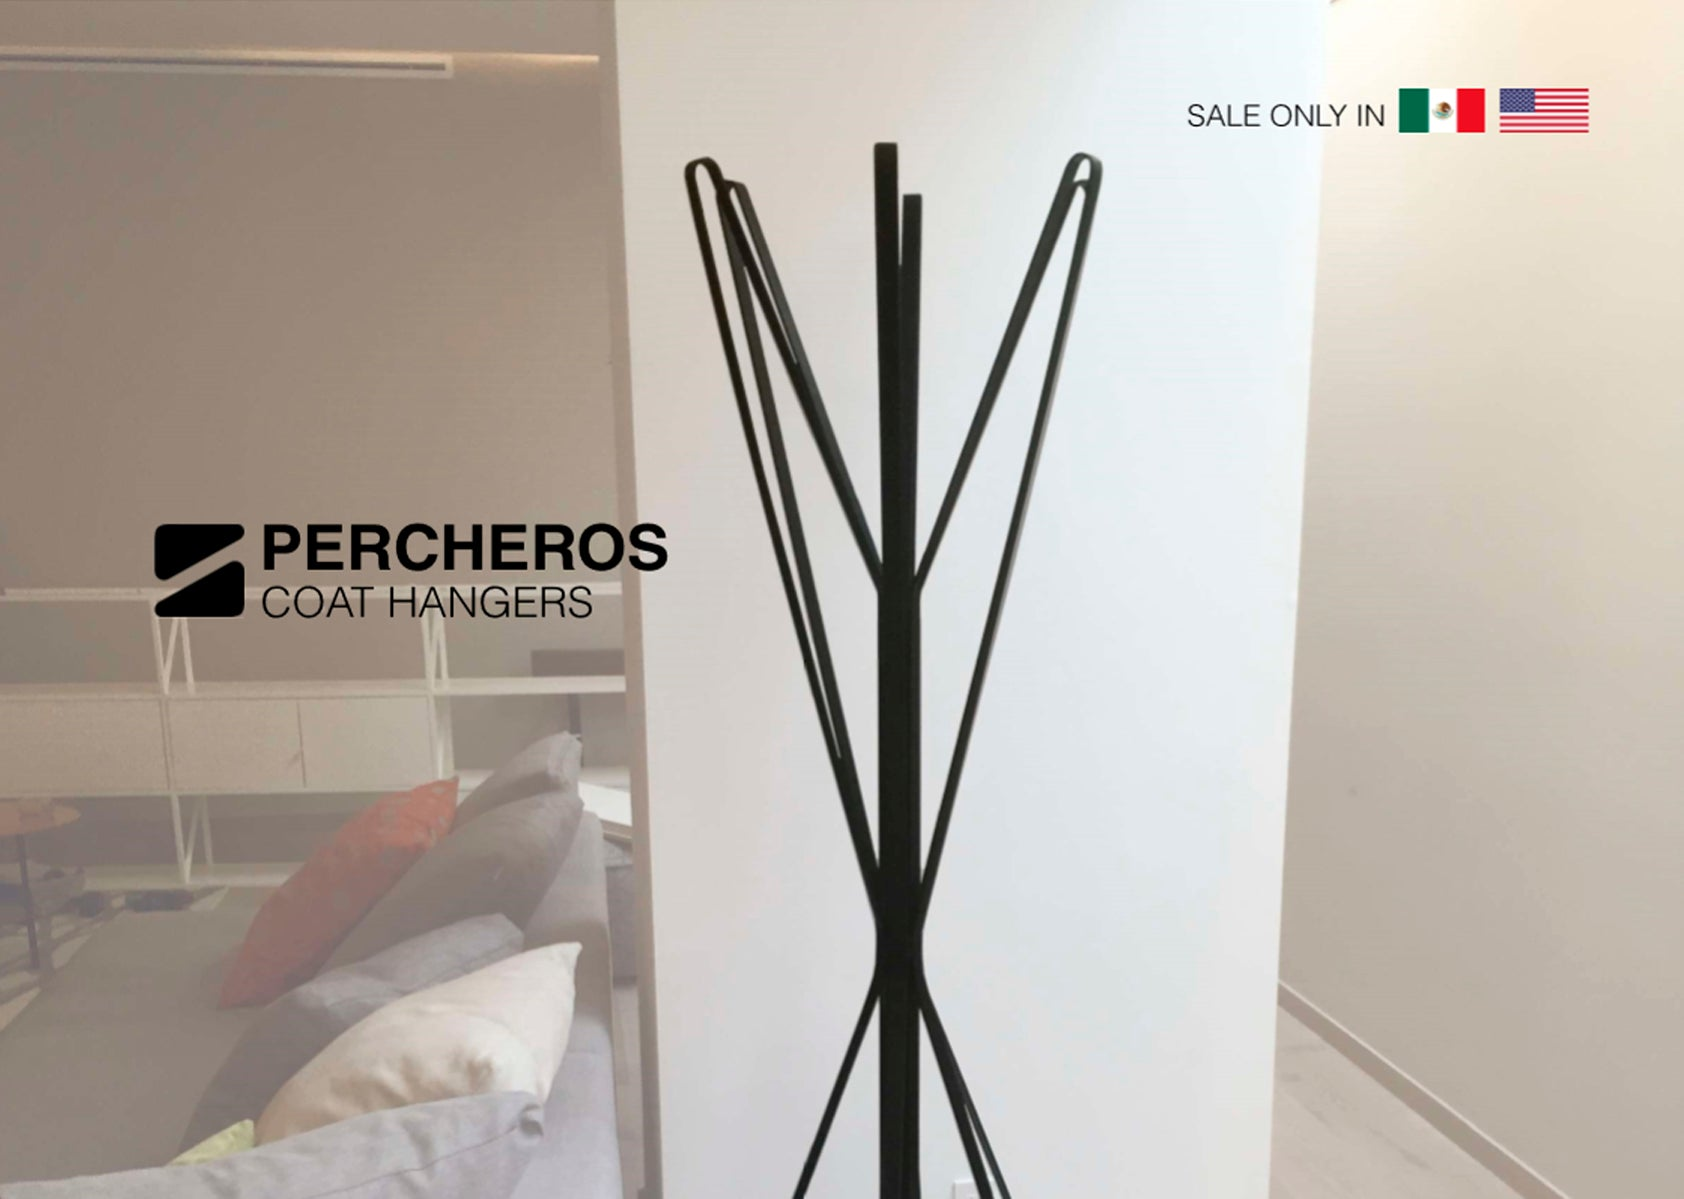 PERCHEROS // COAT HANGERS